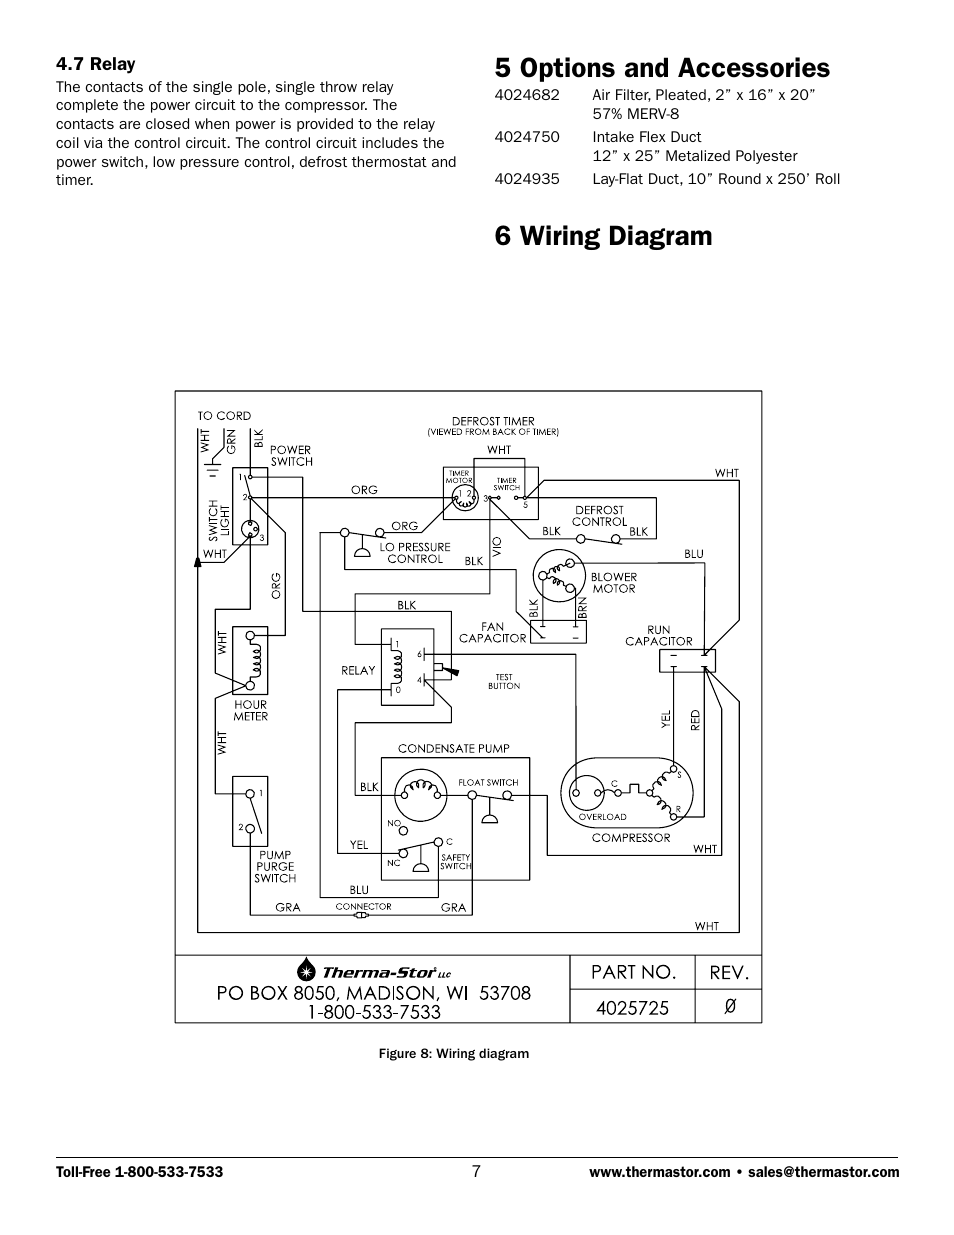 hight resolution of 5 options and accessories 6 wiring diagram therma stor products phoenix connector wiring diagram phoenix wiring diagram